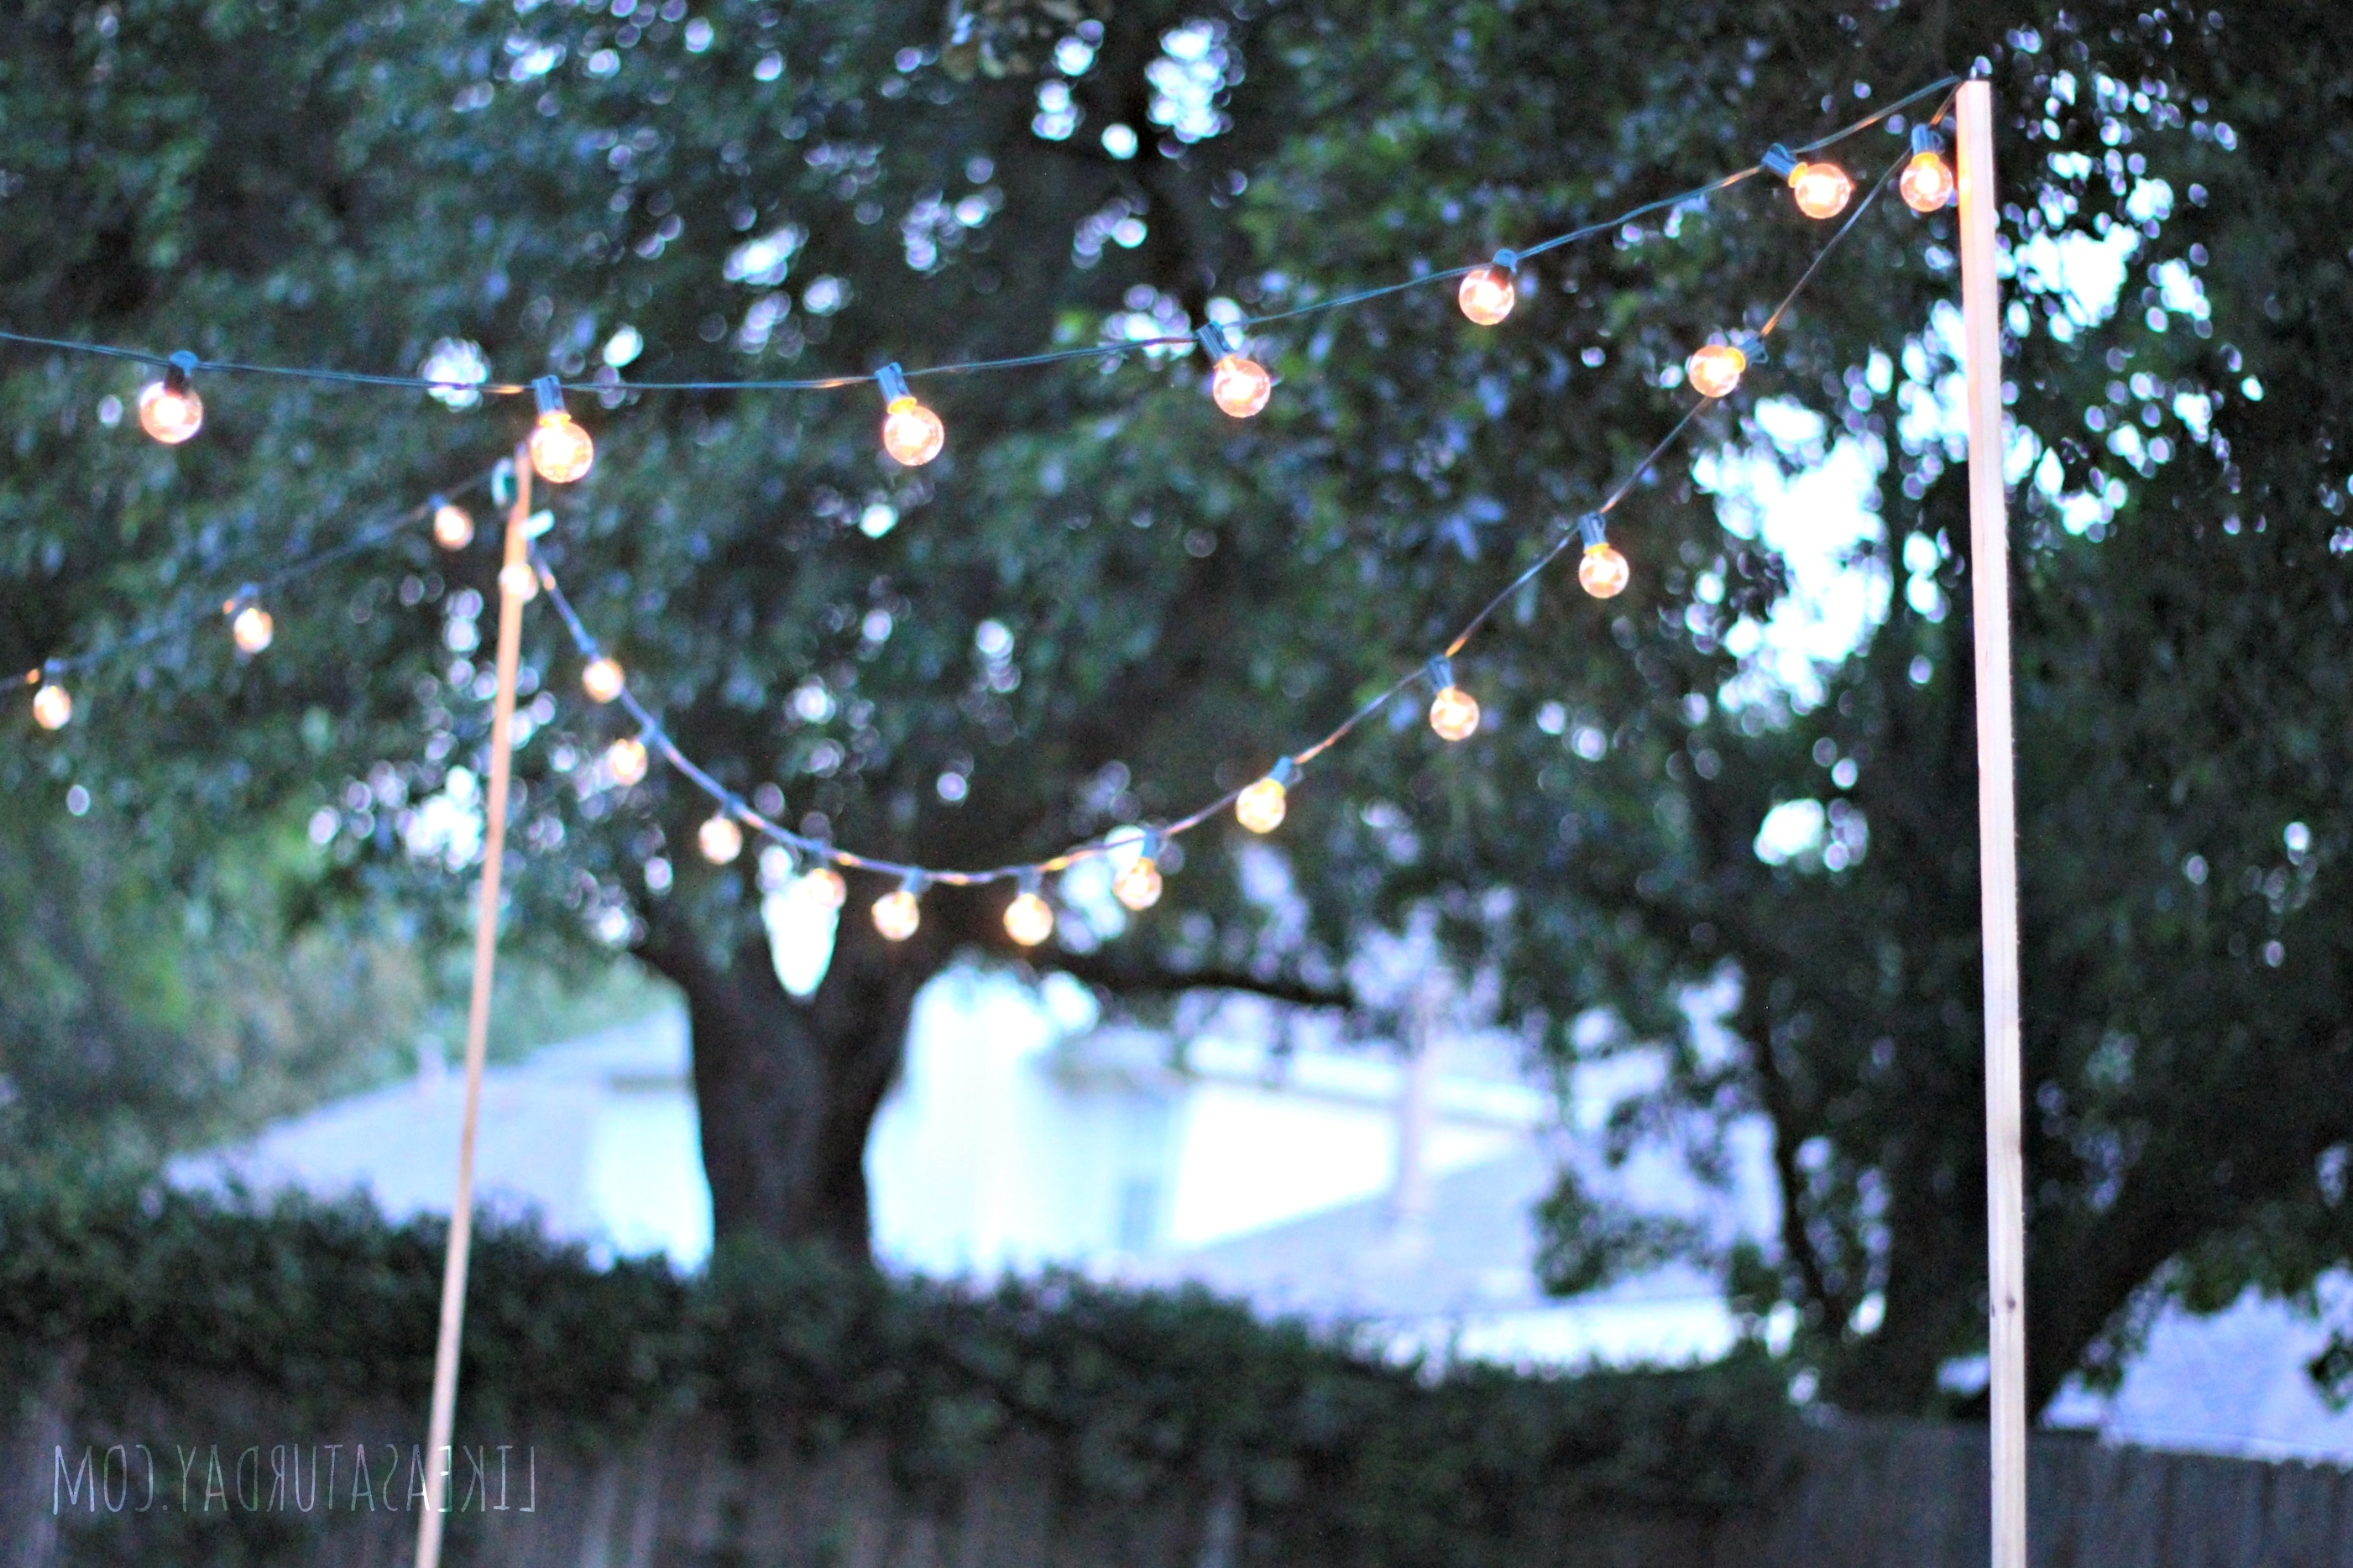 Hanging Outdoor Christmas Lights Without Nails With Regard To Well Known Diy : Outdoor String Lights Hanging Brick Patio Without Nails Party (Gallery 20 of 20)